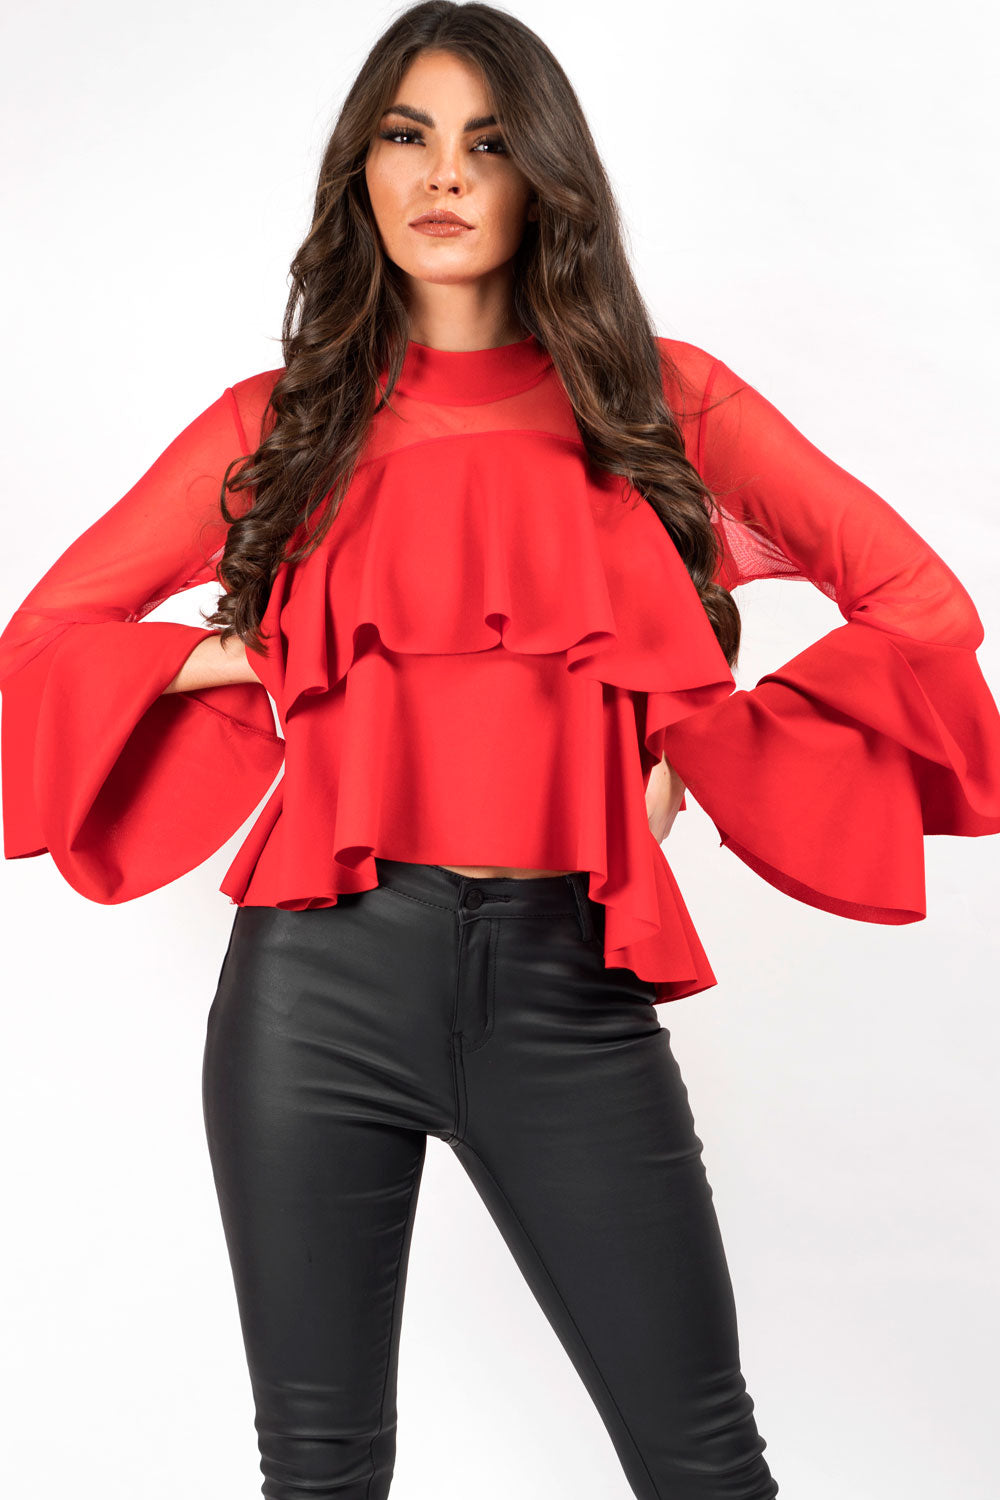 red frill party top